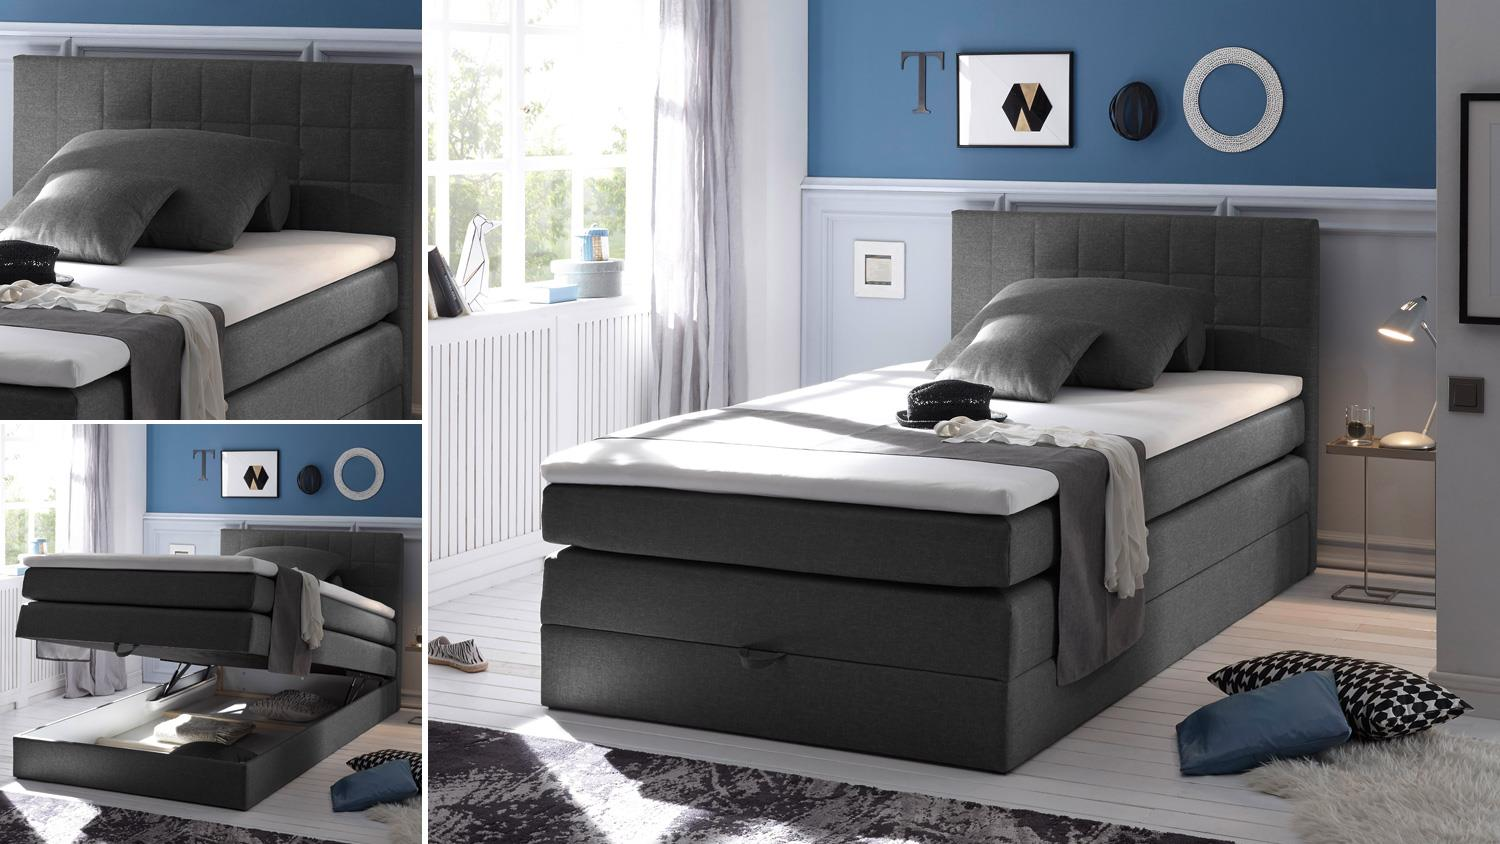 boxspringbett 120x200 hawaii stoff anthrazit bettkasten und topper. Black Bedroom Furniture Sets. Home Design Ideas